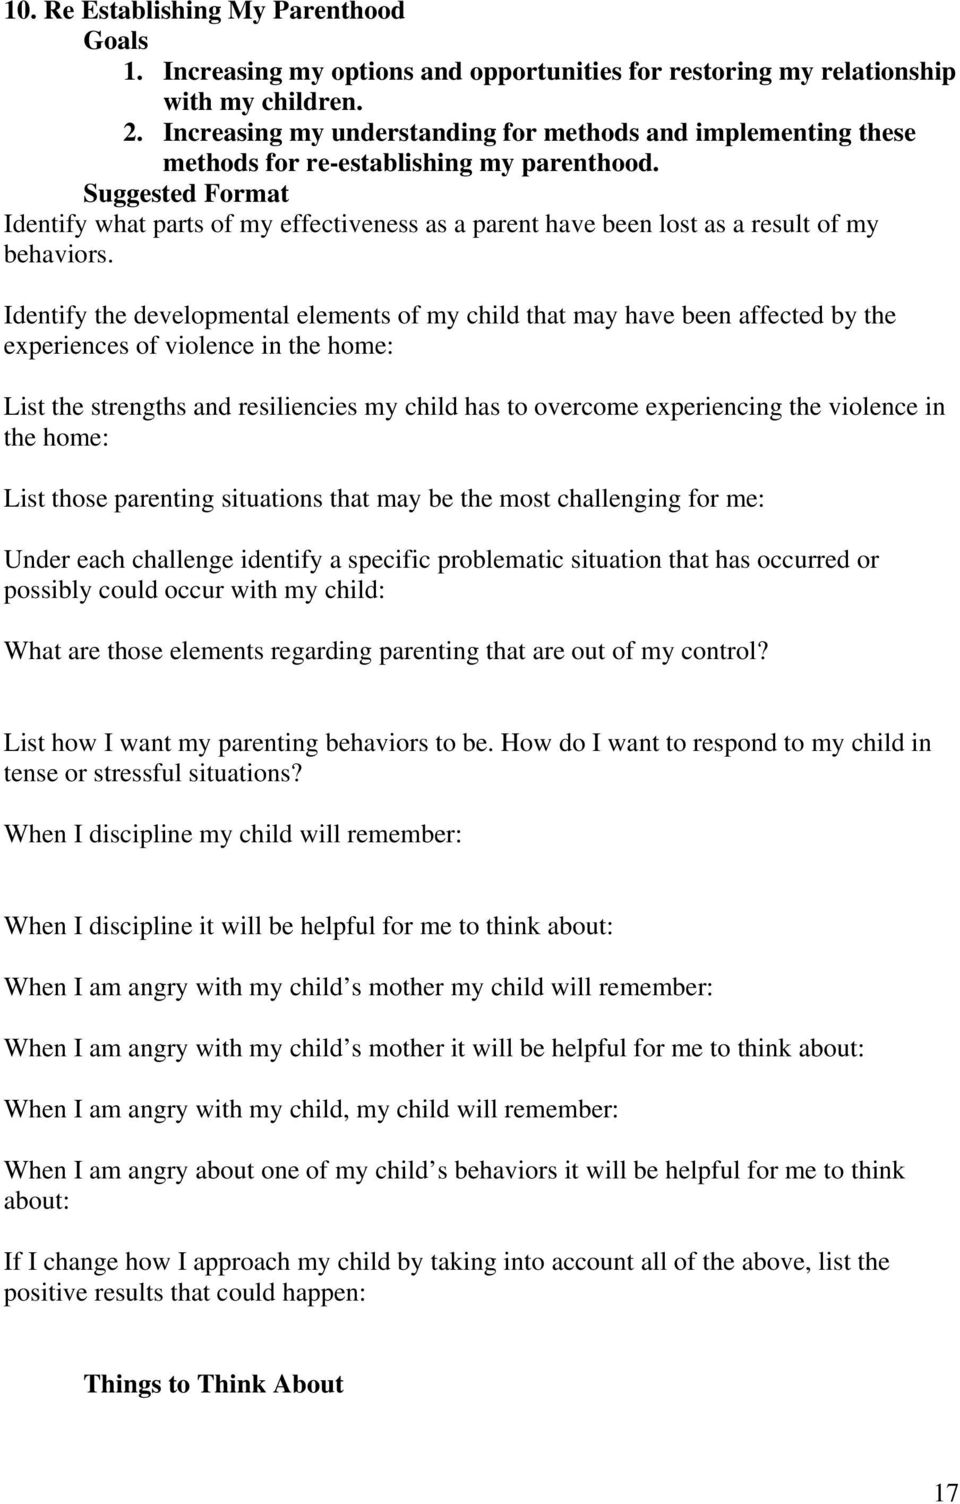 Identify what parts of my effectiveness as a parent have been lost as a result of my behaviors.